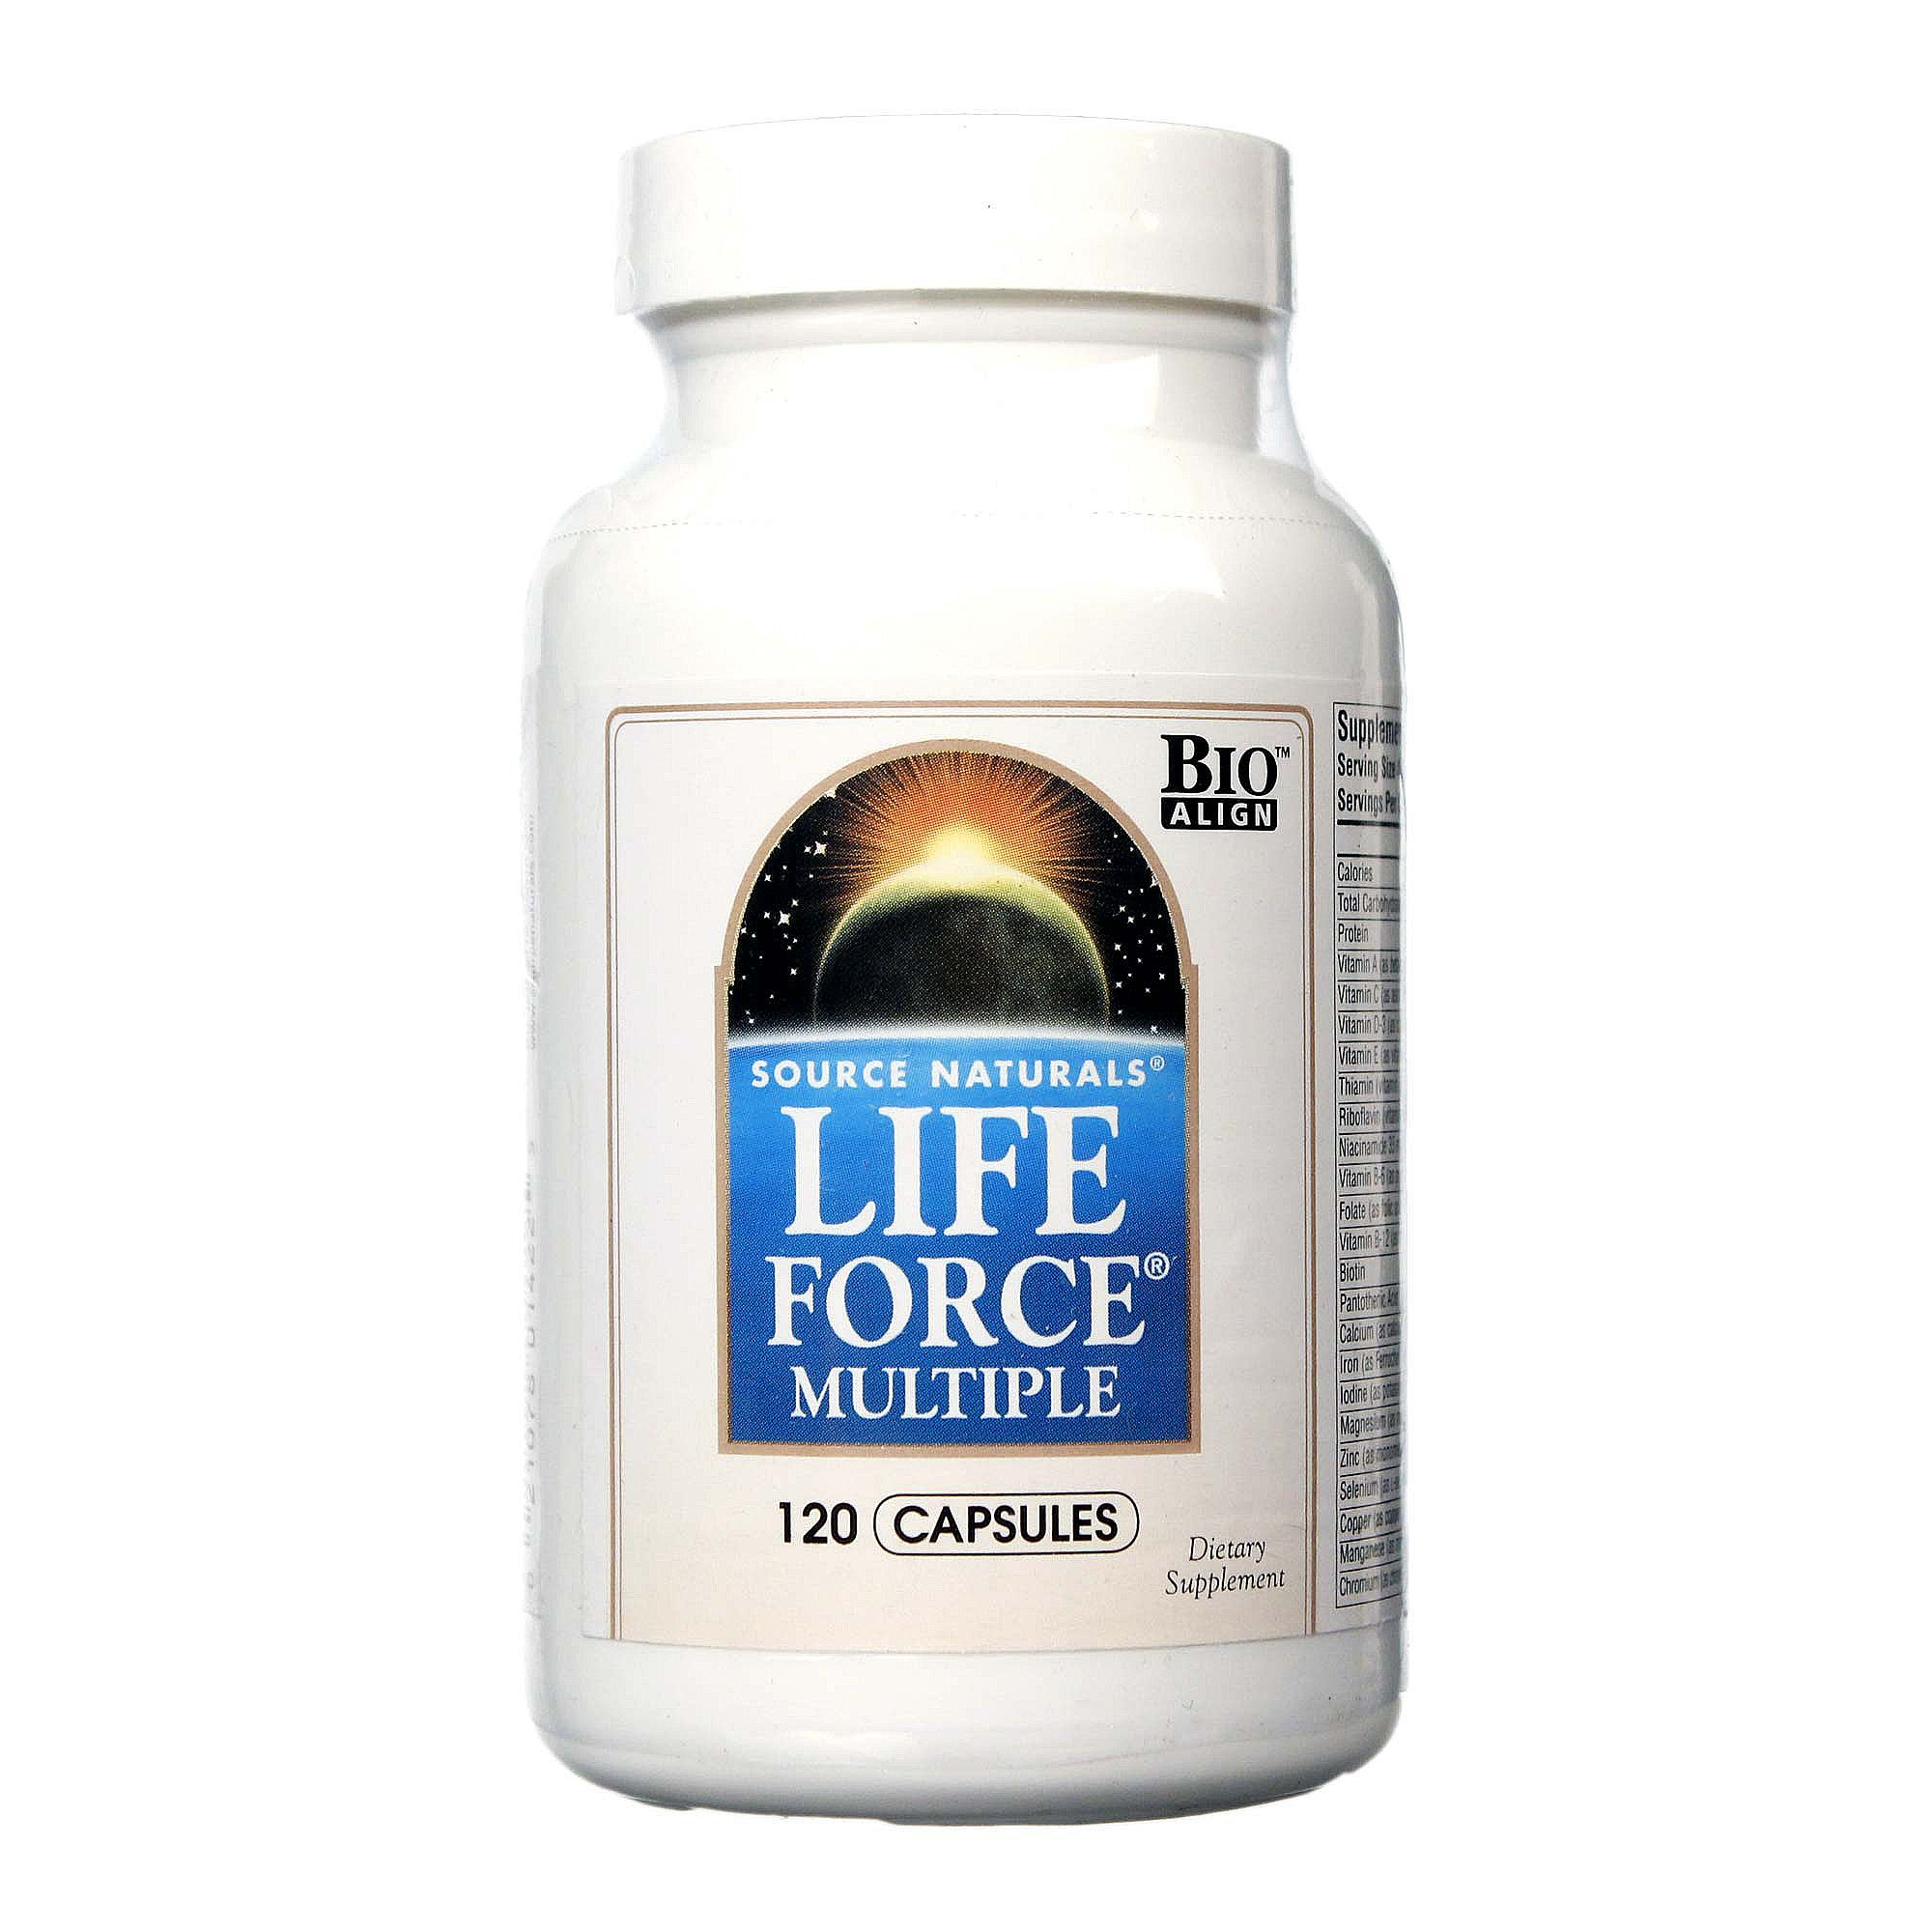 Source Naturals Life Force Multivitamin Review